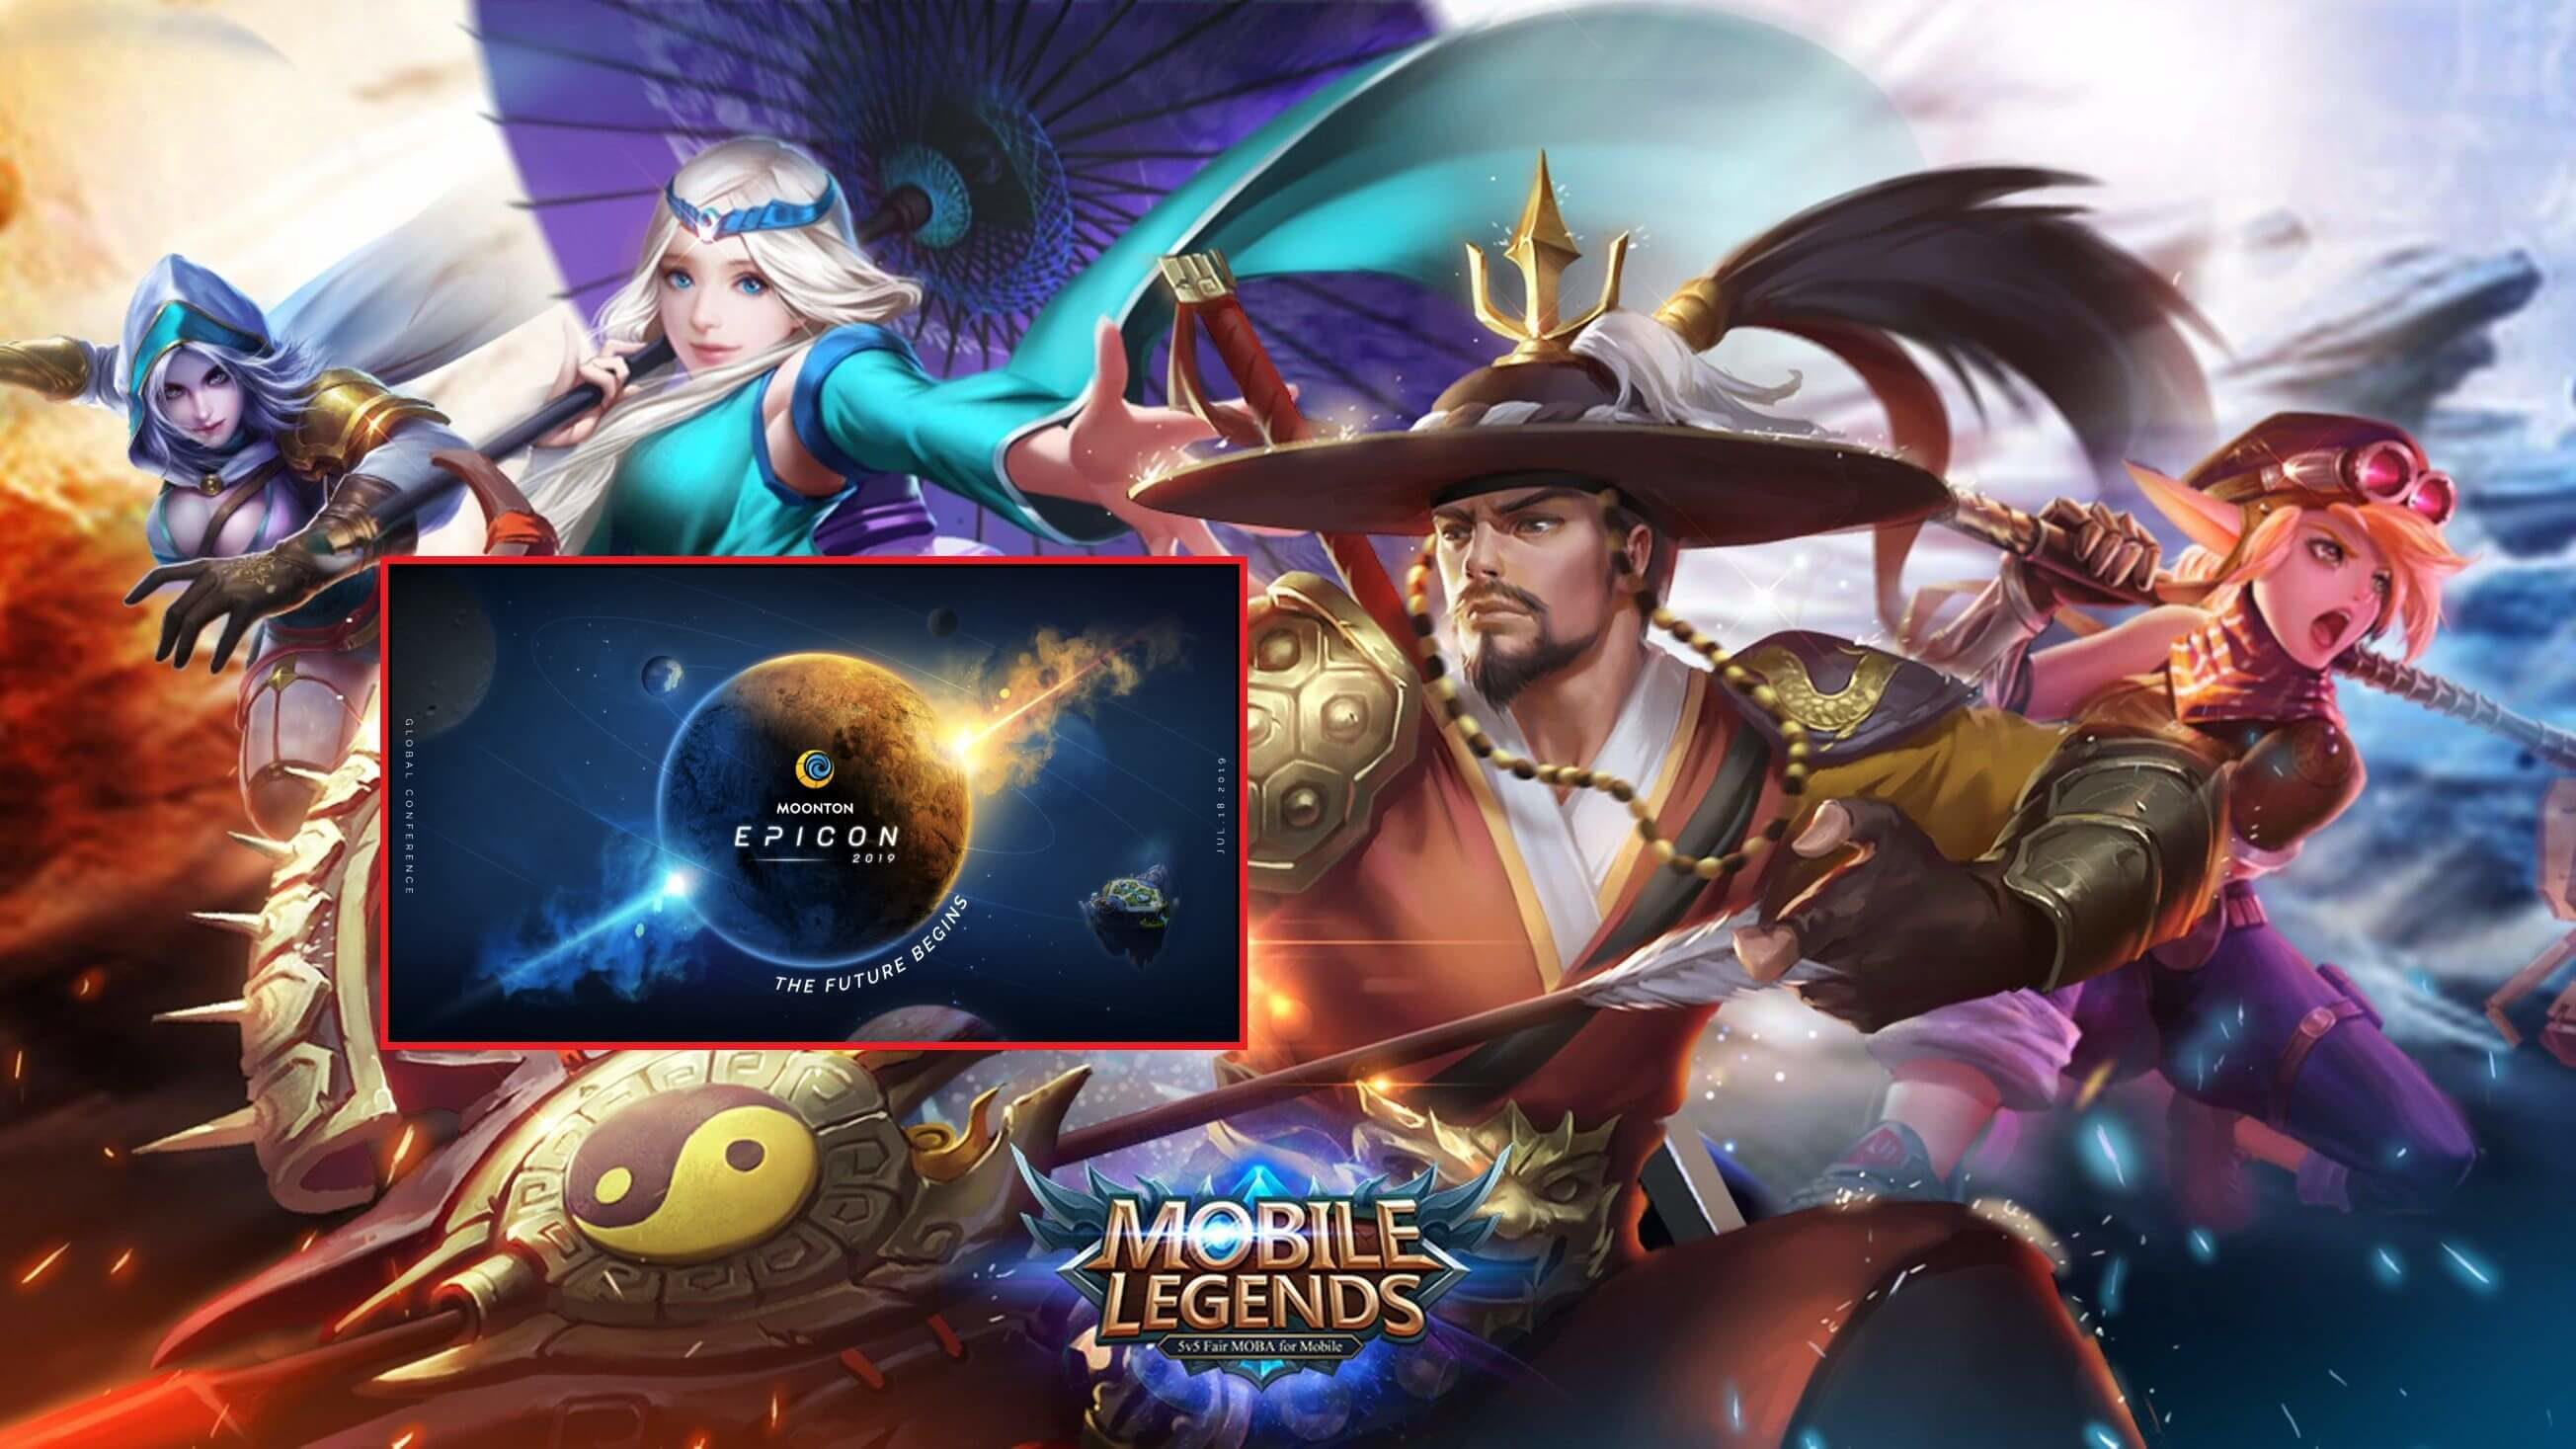 Mobile Legends Version 2.0, eSports, New Game, etc. To Be